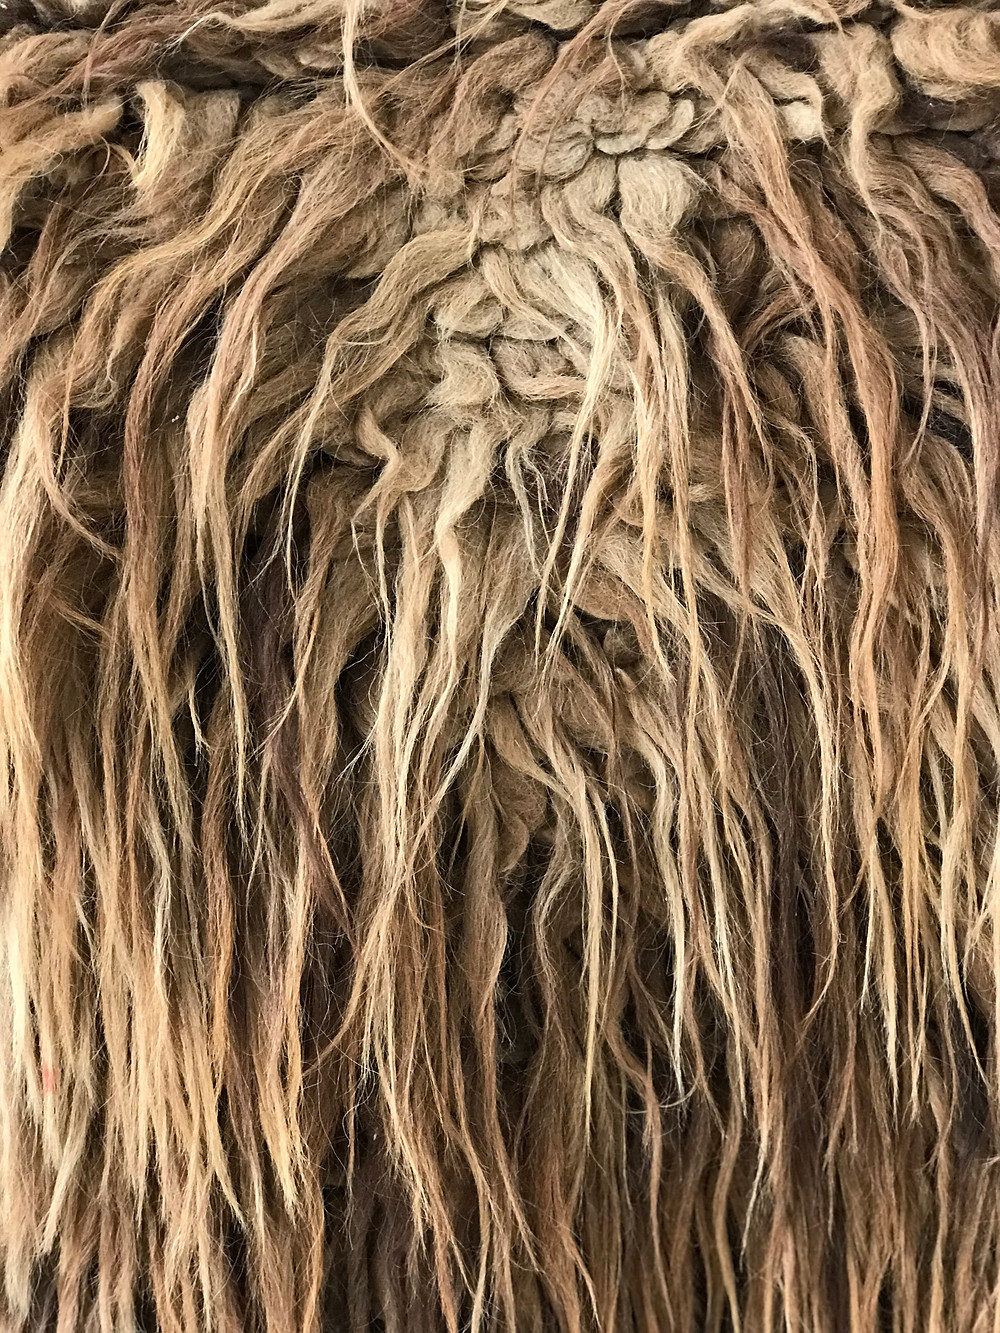 Long and coarse outer hair